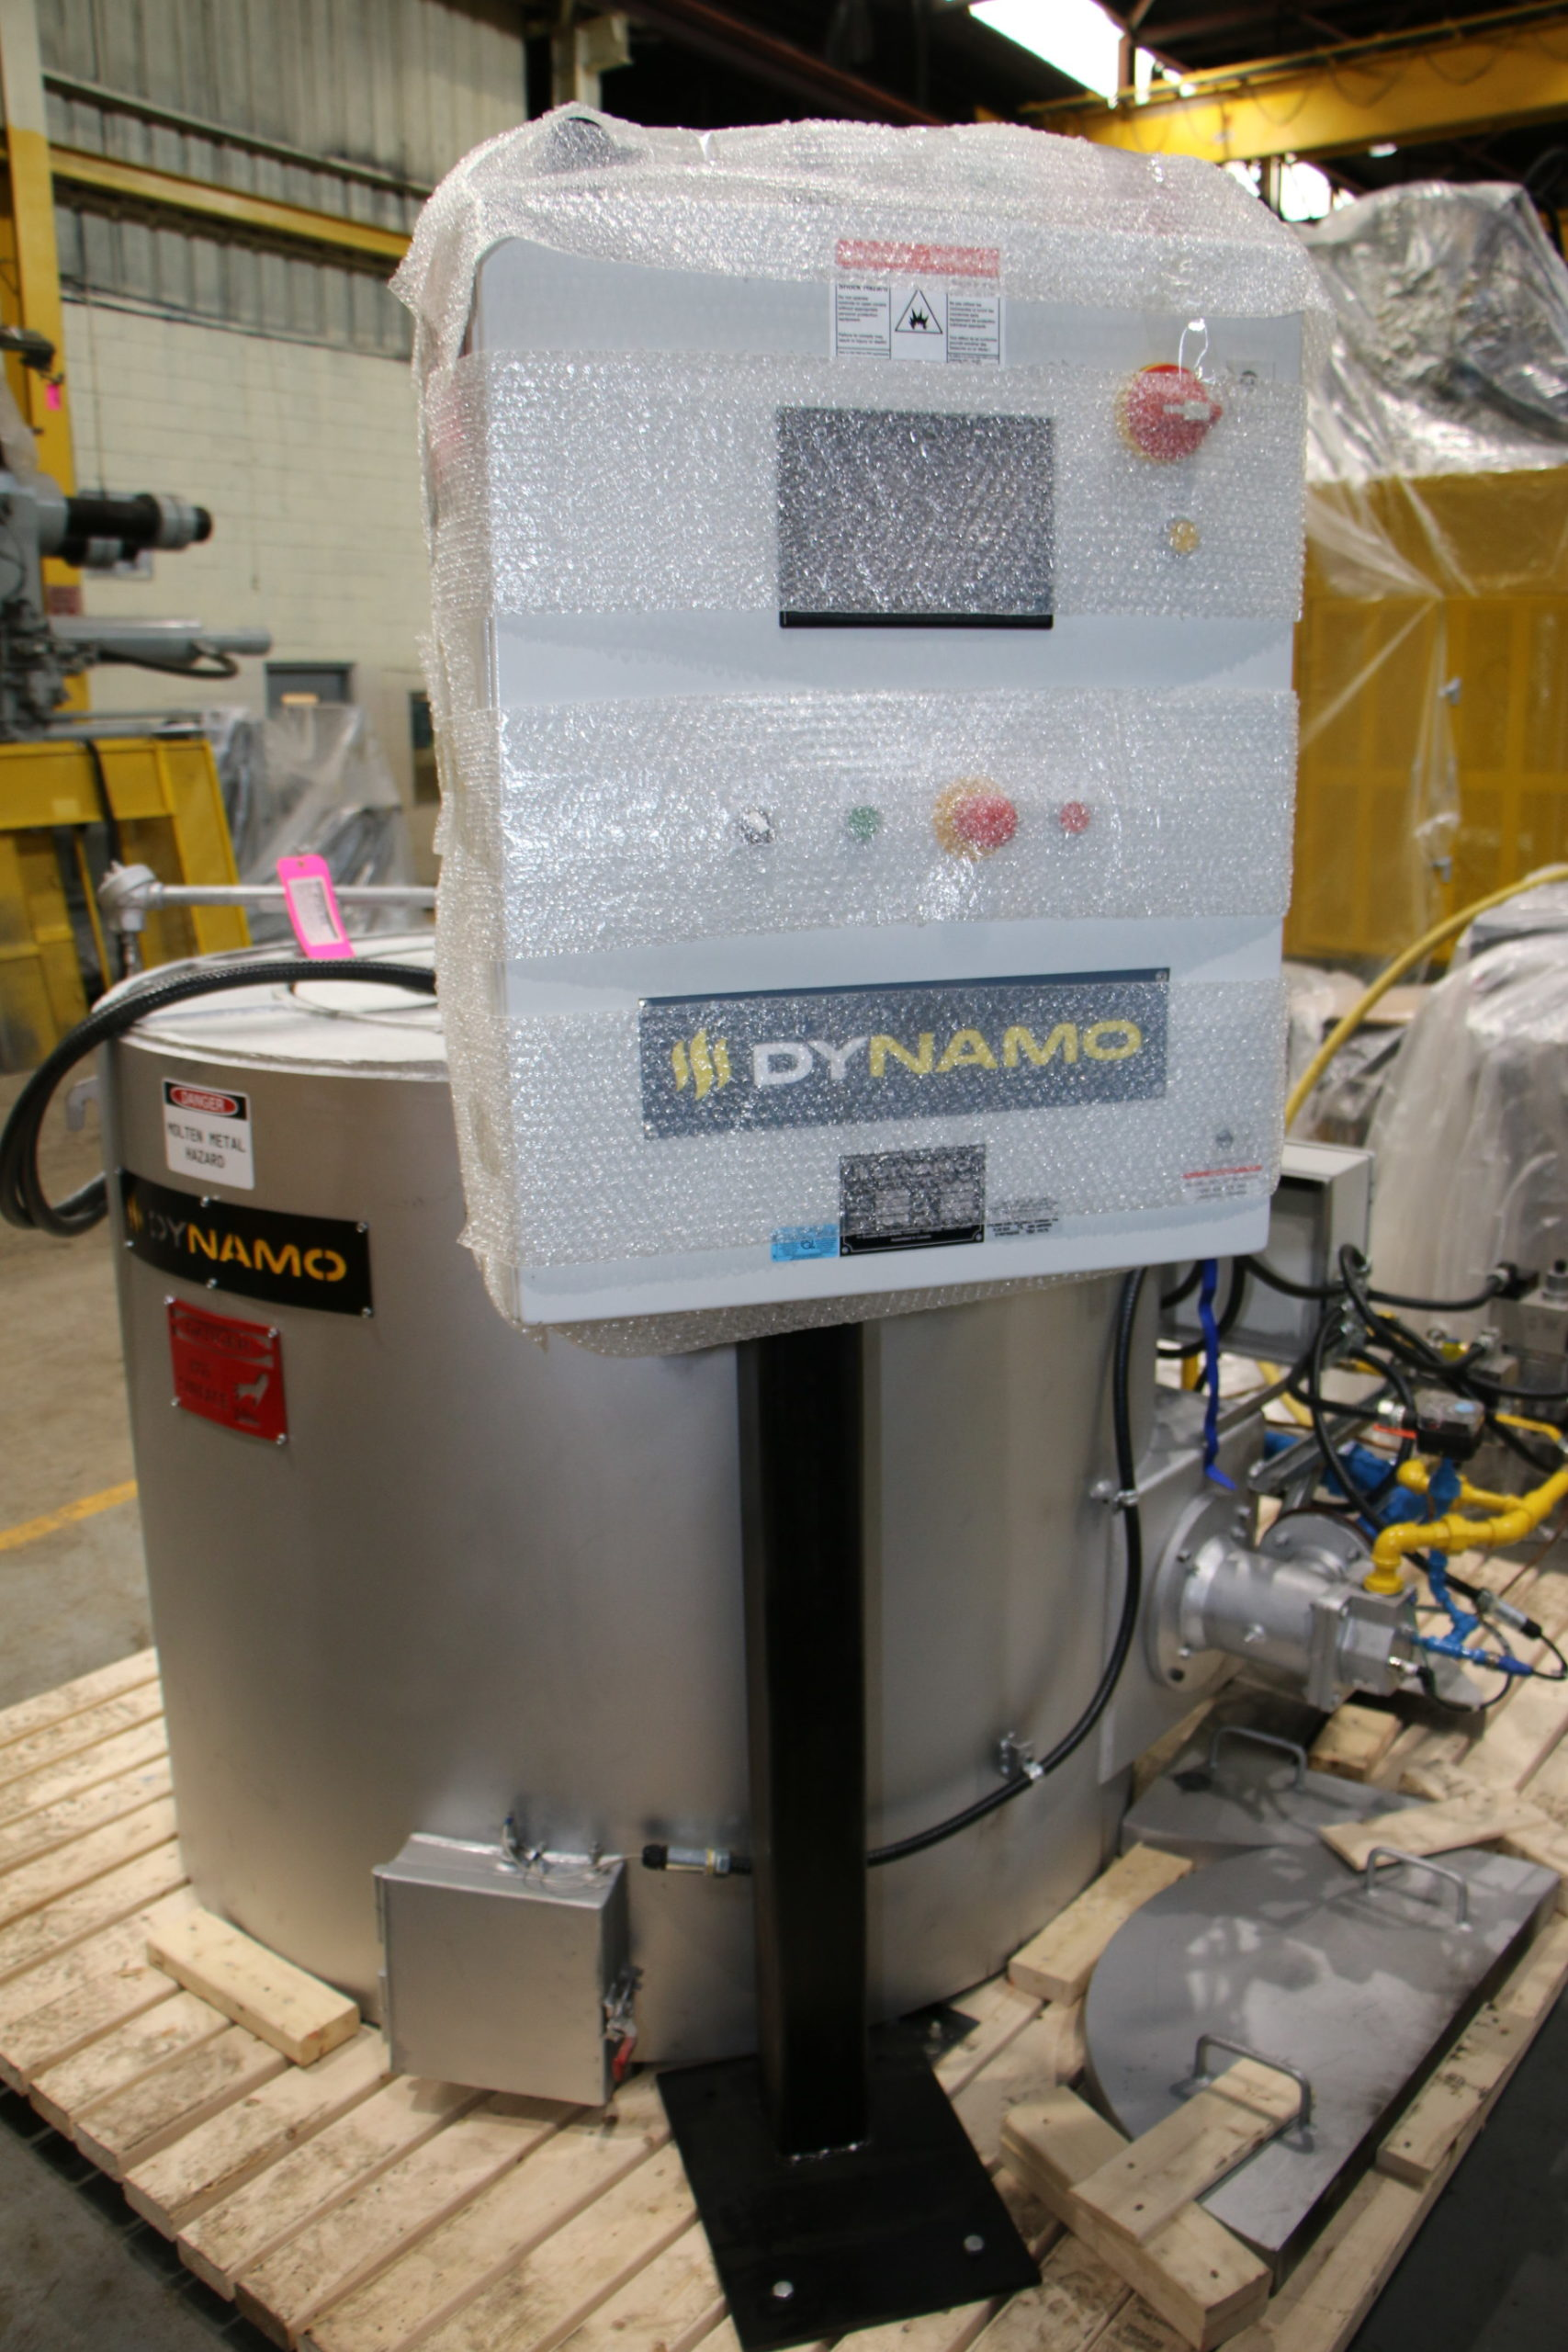 New Dynamo 330 Lbs 150Kw Gas Melting and Holding Furnace #4757